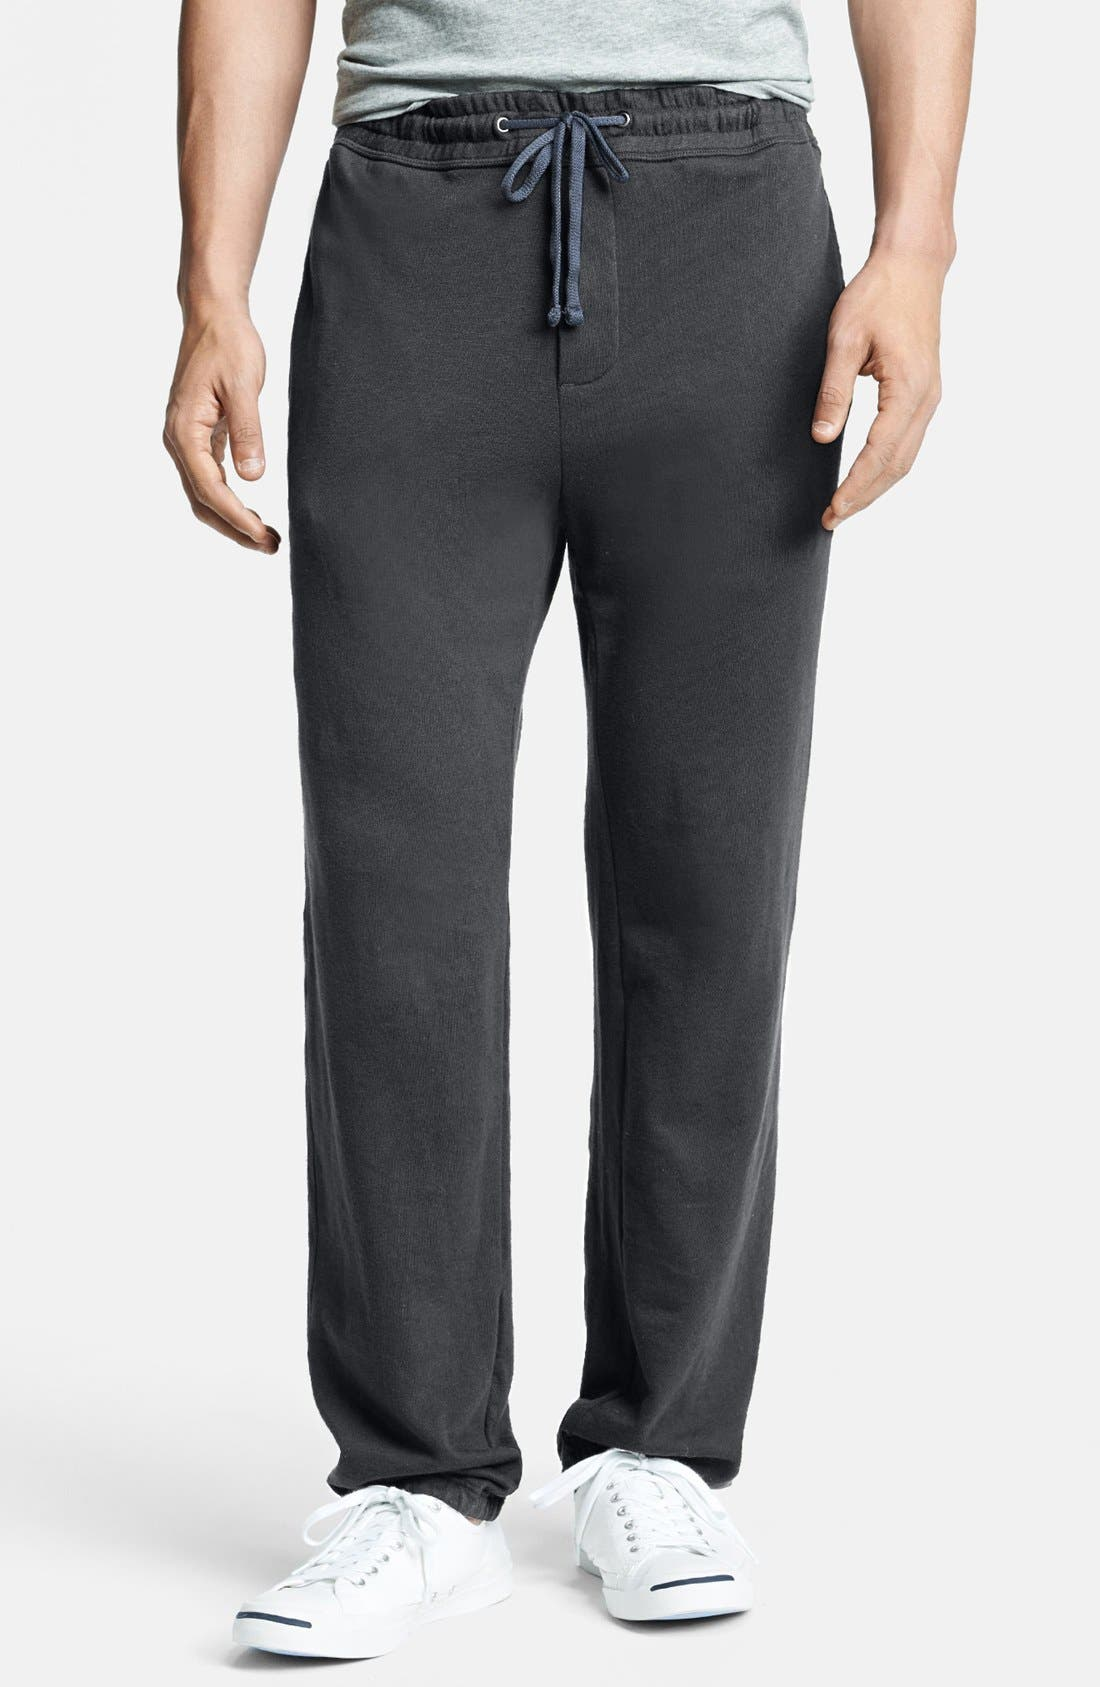 Main Image - James Perse 'Classic' Sweatpants